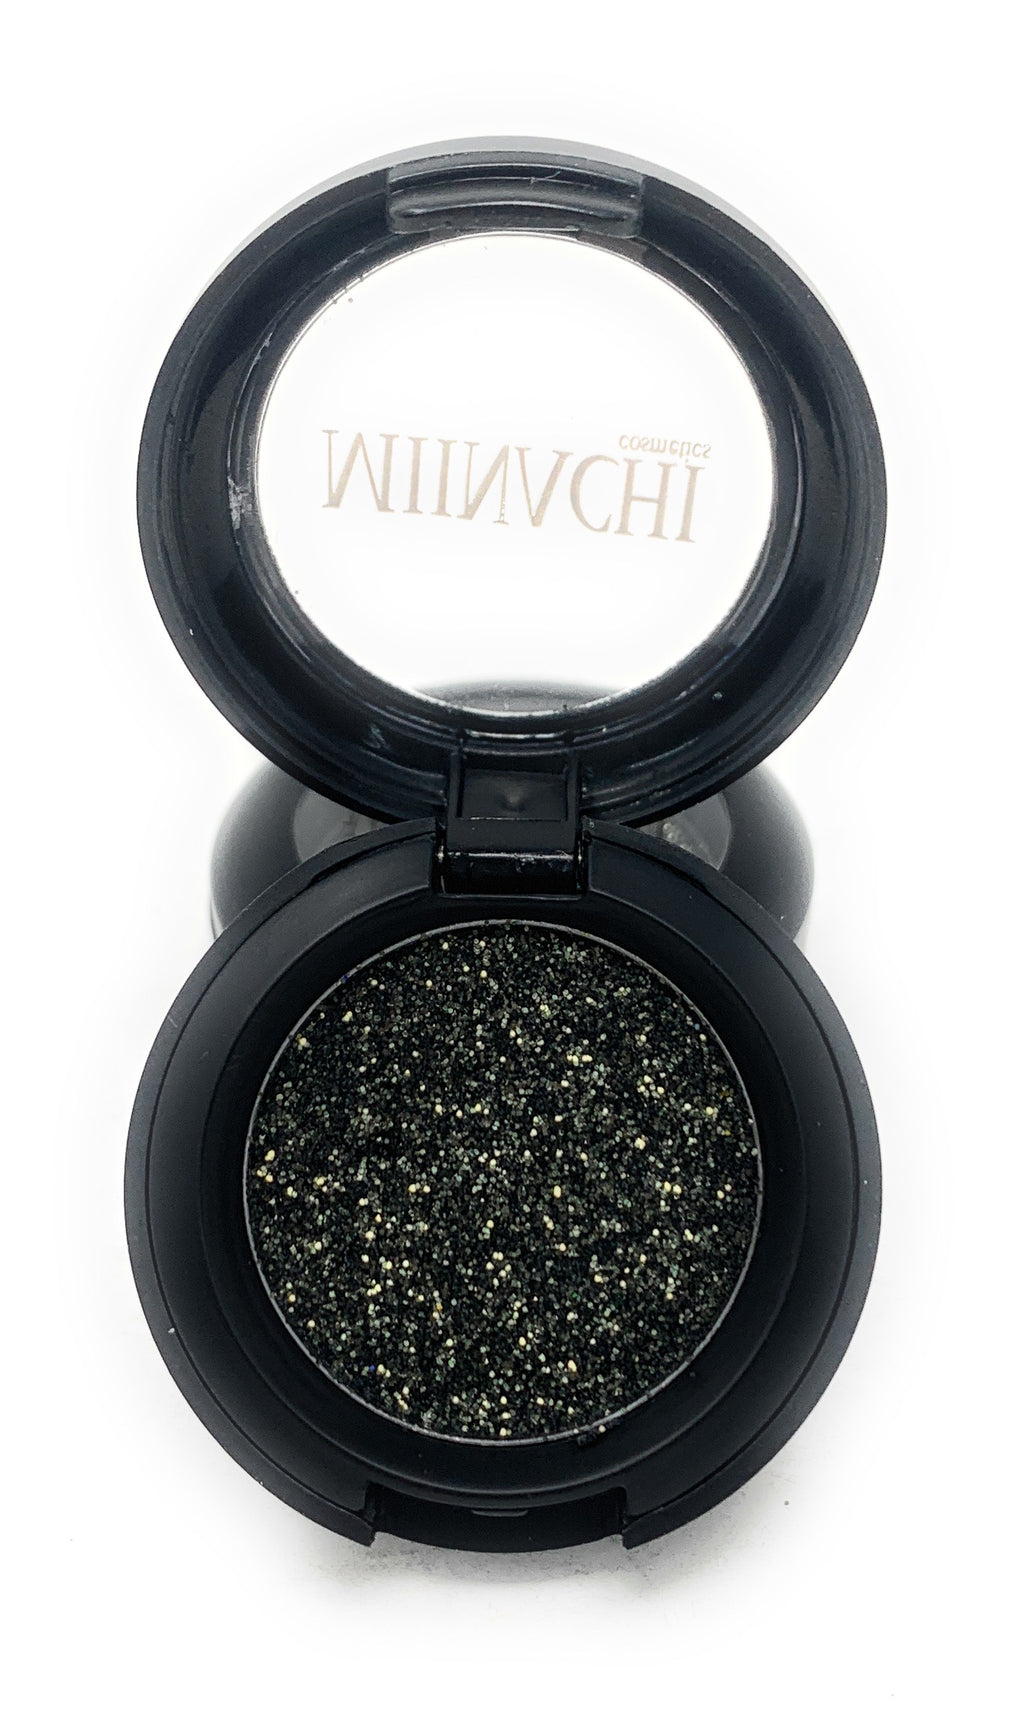 Single Pressed Glitter in the shade Khaki, No Glue Needed, In Compact, Pigmented, No Fall Out, Glitter, Cosmetic Grade Glitter